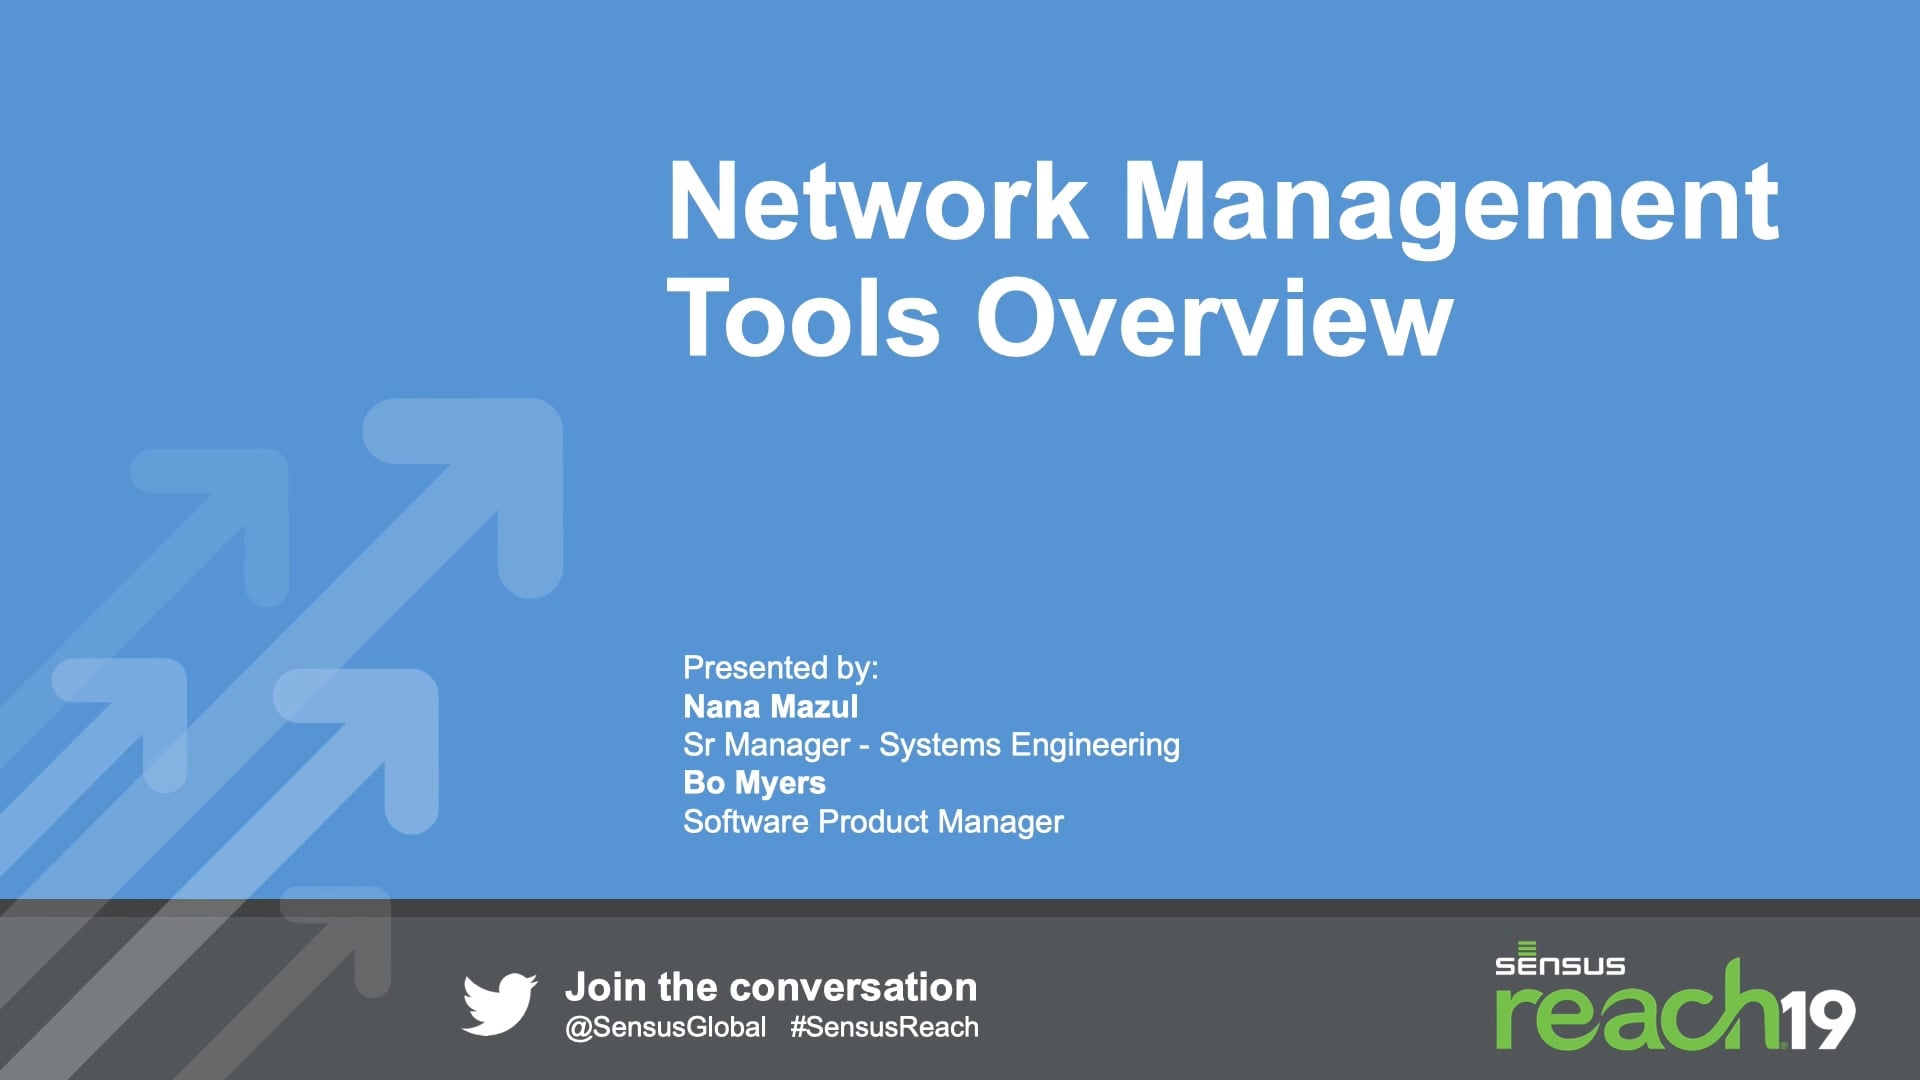 Network Management Tools Overview